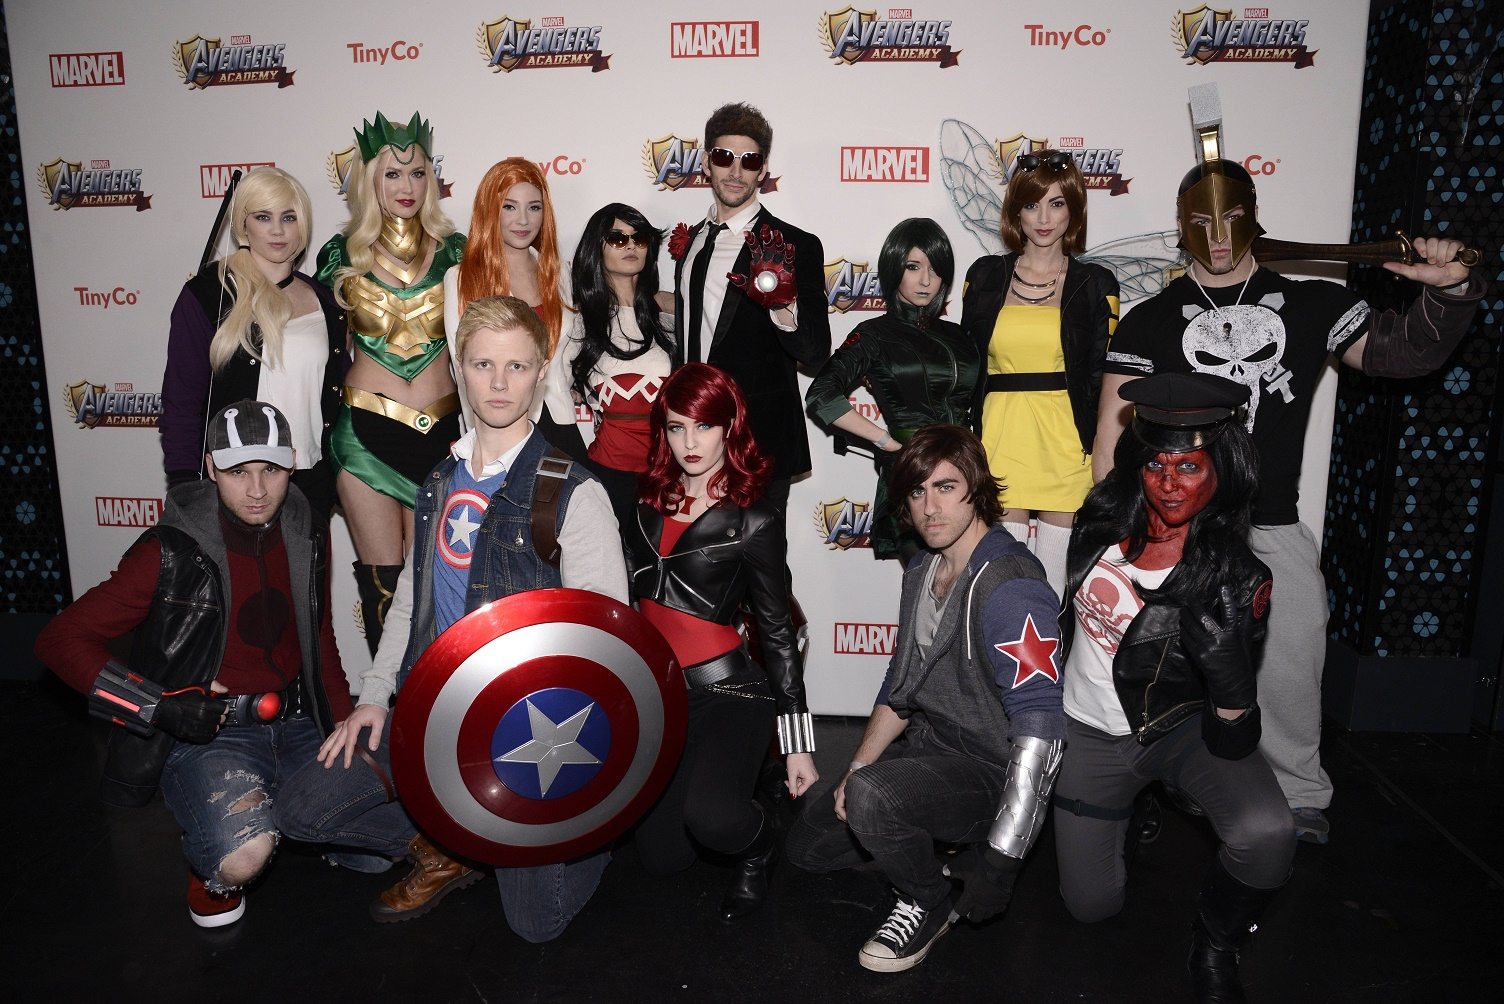 Marketing and Mortality at the Avengers Academy Launch Party